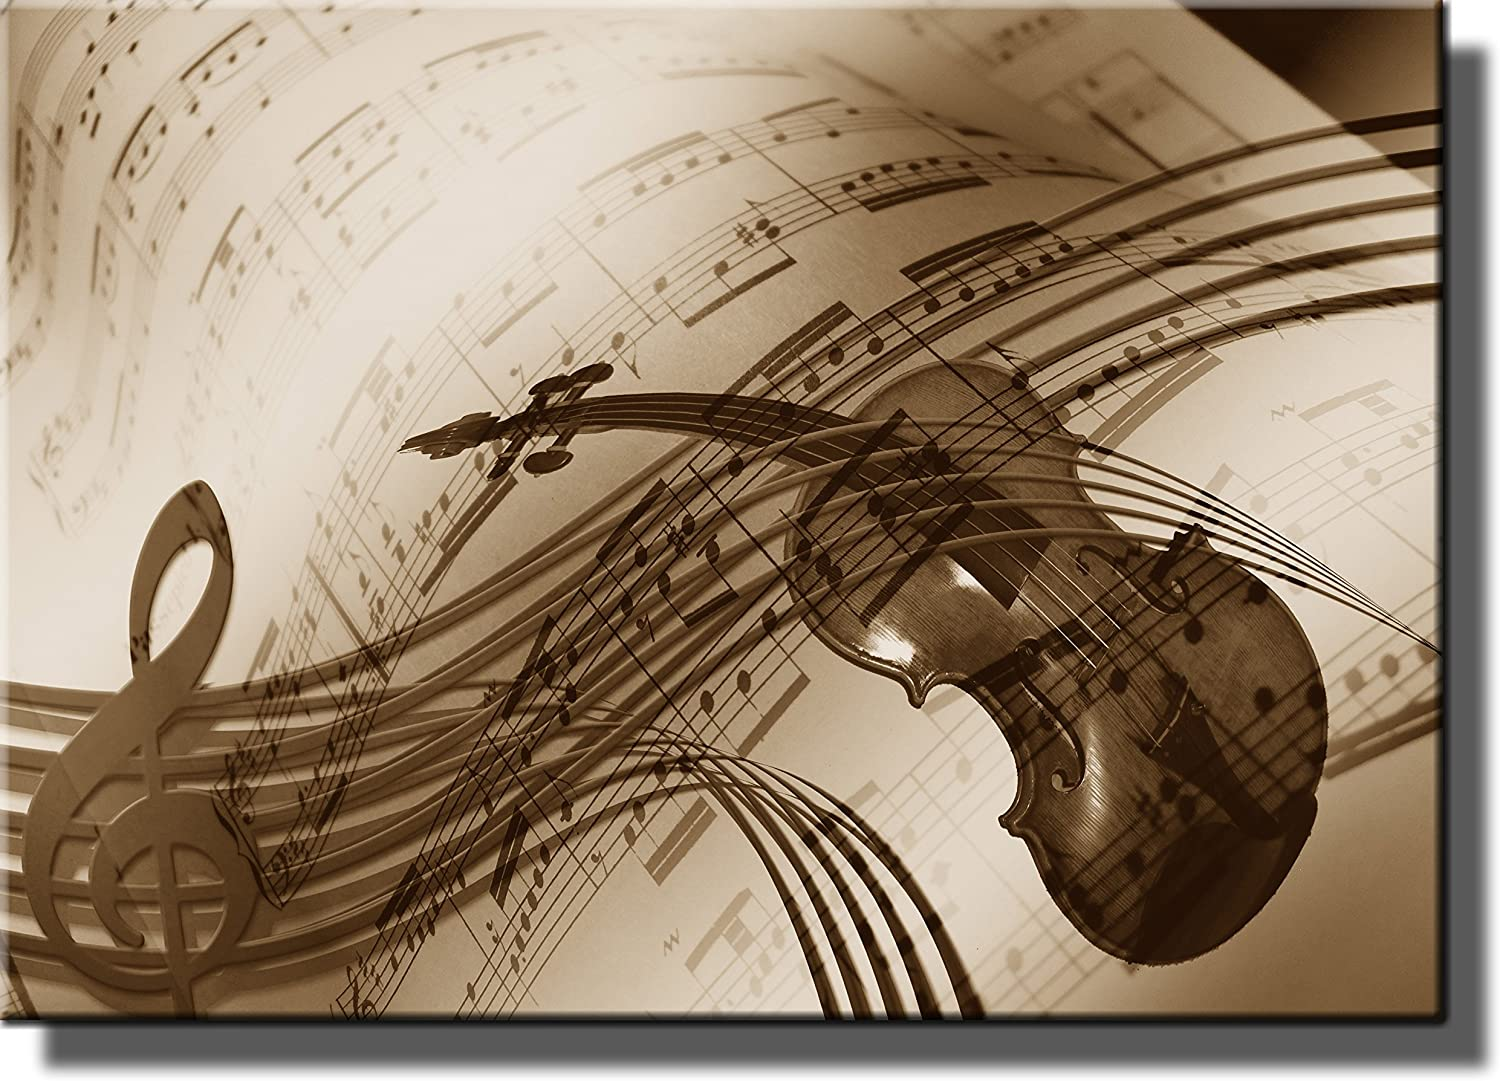 Music Notes Violin Picture Made on Stretched Canvas, Wall Art Decor Ready to Hang!.